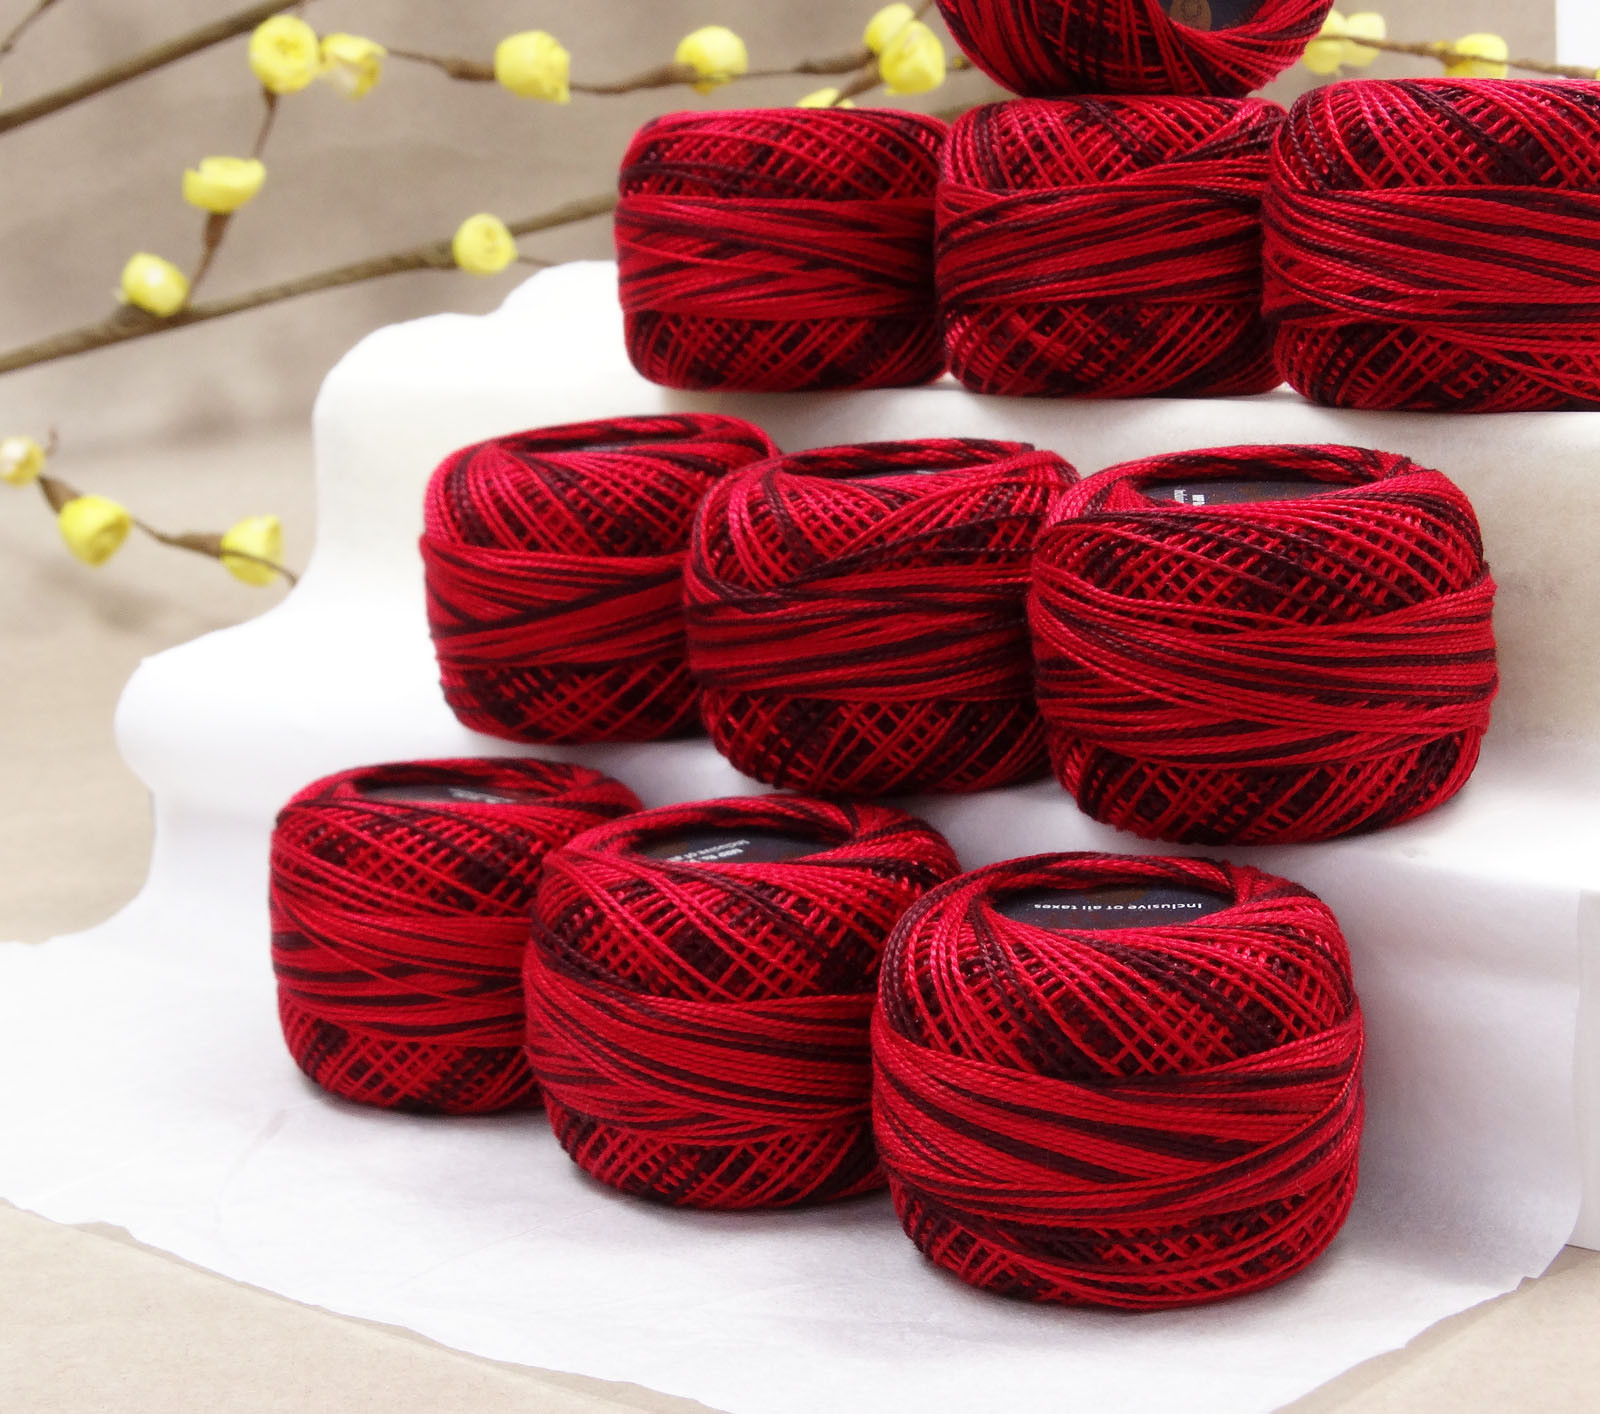 Crochet Thread Unique Anchor Crochet Cotton Variegated Yarn Embroidery Knitting Of Innovative 49 Images Crochet Thread